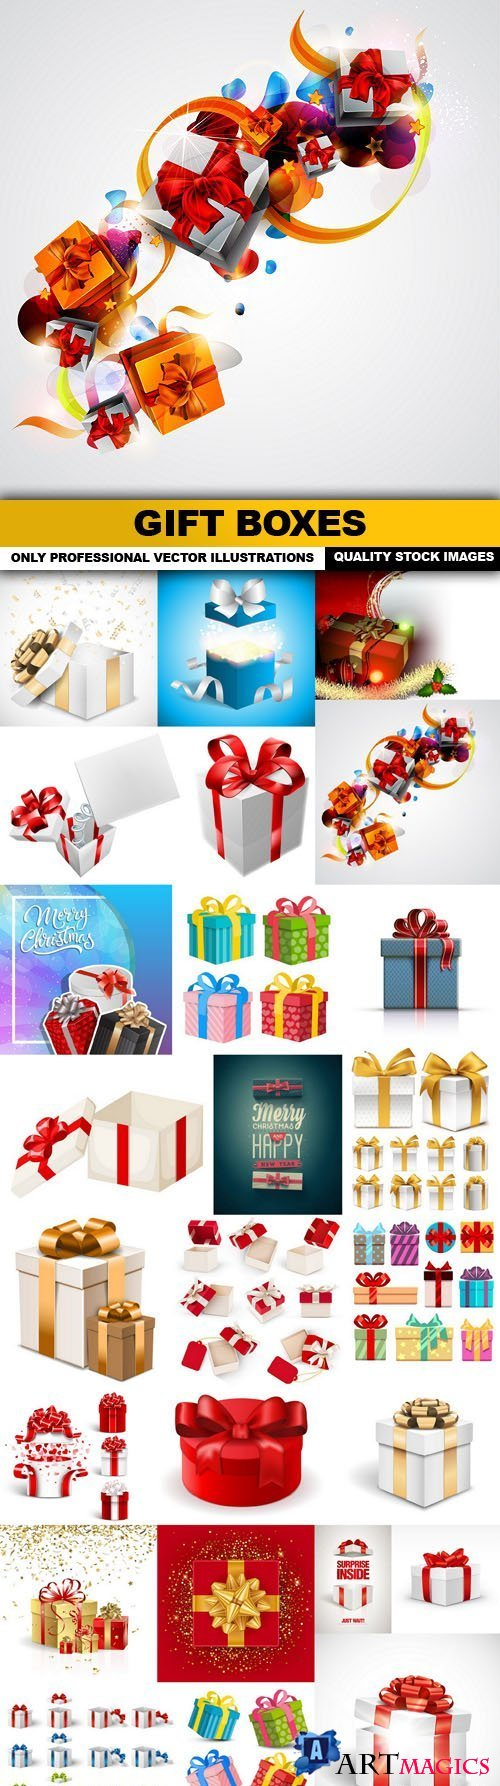 Gift Boxes - 25 Vector